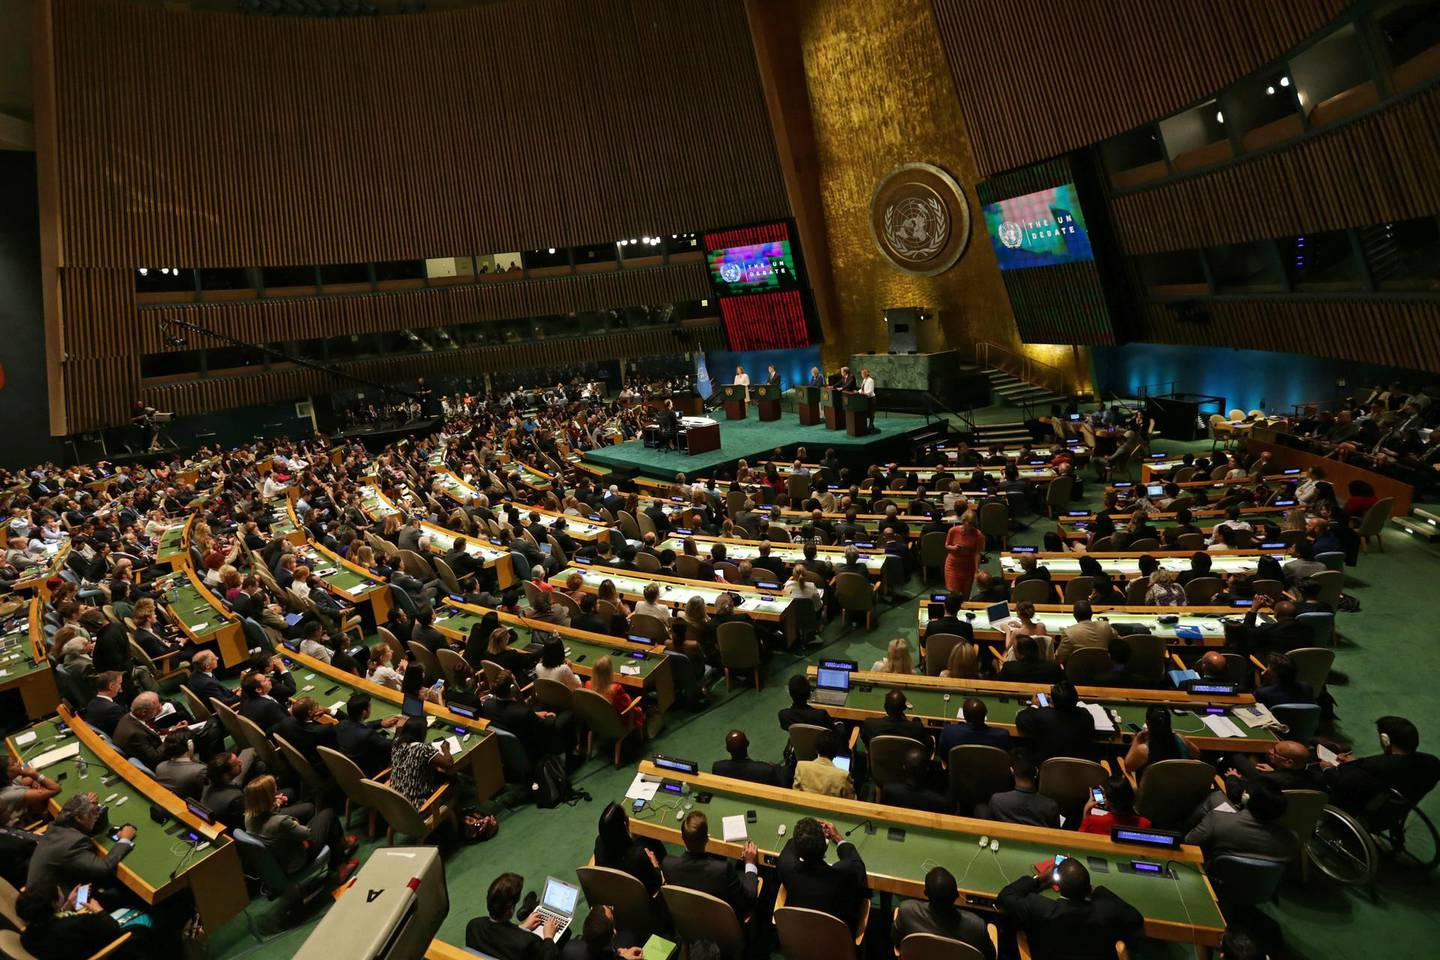 epa08668129 epa05422294 A general view shows the General Assembly Hall as candidates for the post of United Nations Secretary-General (back) attend a Global town hall meeting at United Nations (UN) Headquarters in New York, New York, USA, 12 July 2016 (reissued 14 September 2020). The 75th UN General Assembly (UNGA) session begins on 15 September 2020 with most meetings including the General Debate on 22 September being held in a virtual format due to the ongoing coronavirus pandemic.  EPA/PETER FOLEY *** Local Caption *** 52885085